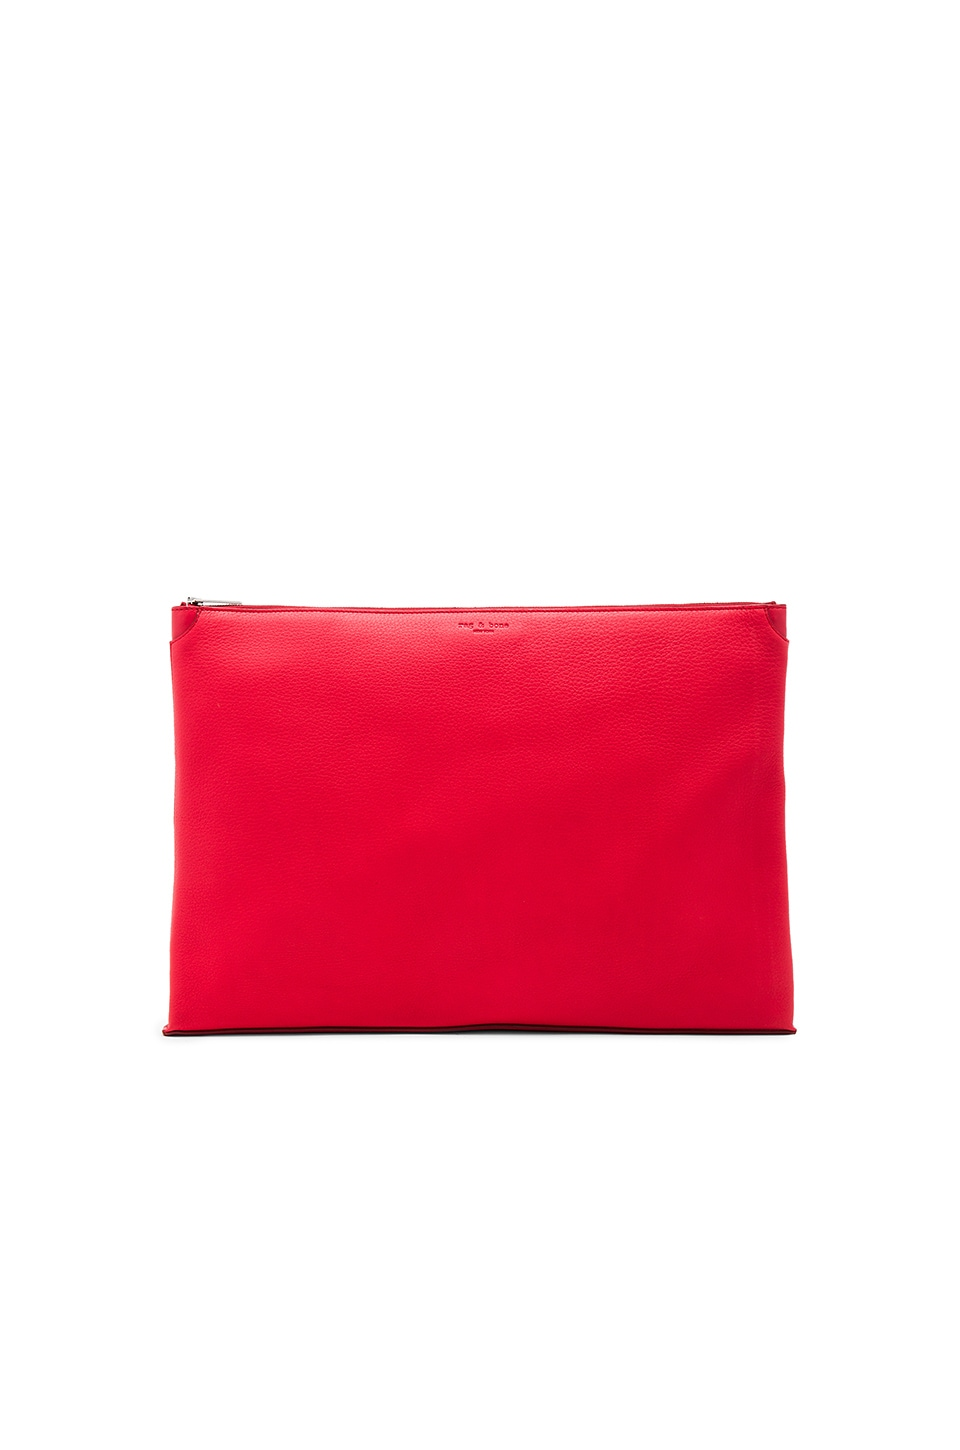 Rag & Bone Large Pouch in Crimson